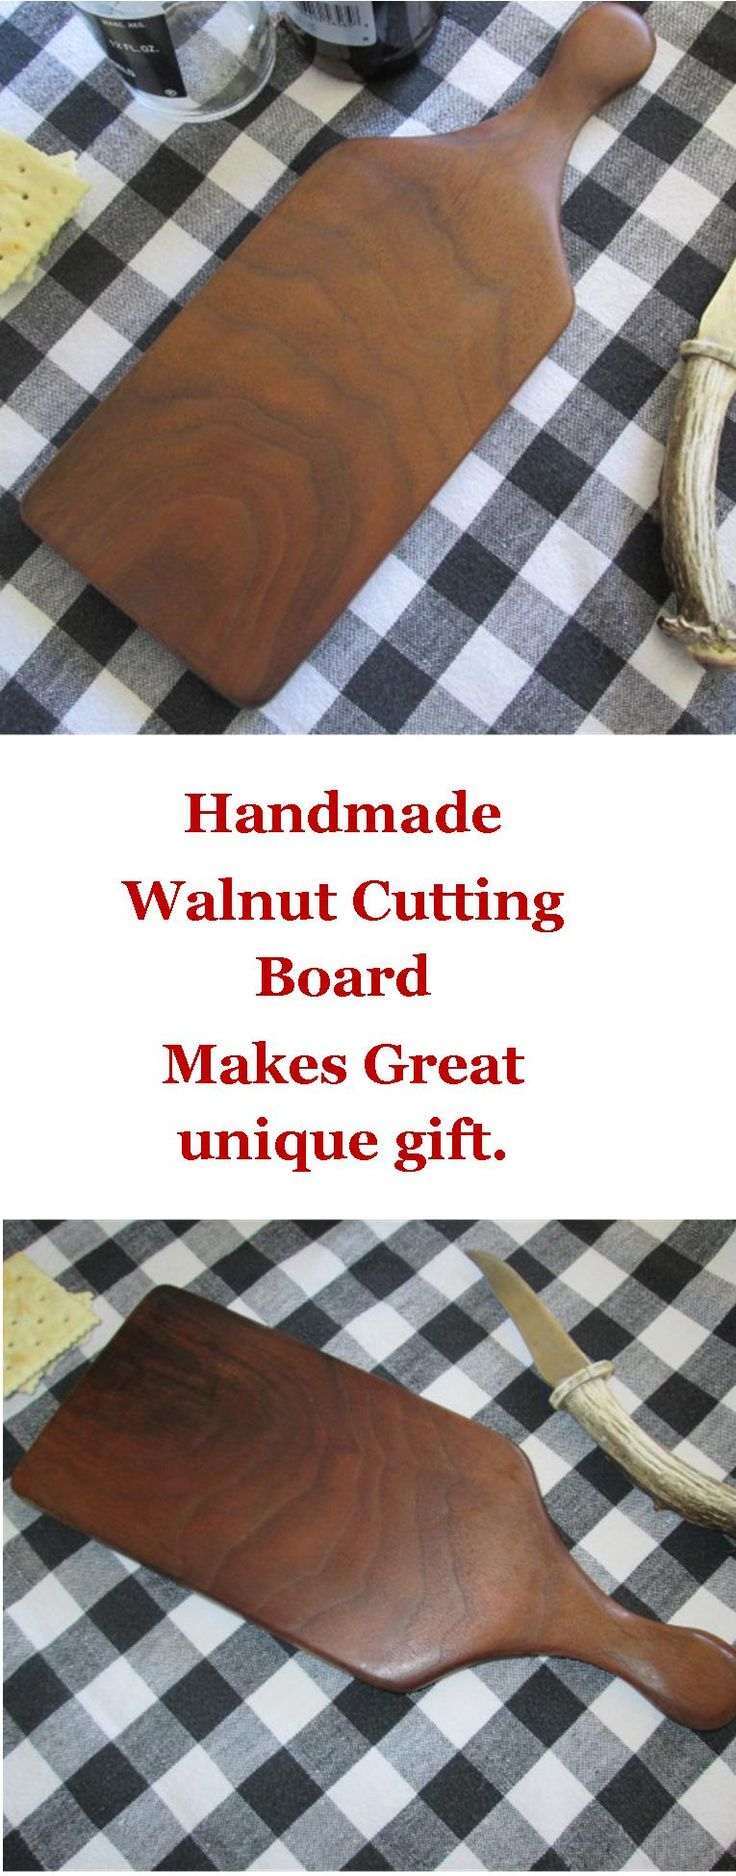 Make your cheese plate simply stunning diy wood slice cutting board - Make Your Cheese Plate Simply Stunning Diy Wood Slice Cutting Board Handmade Walnut Wooden Cutting Download